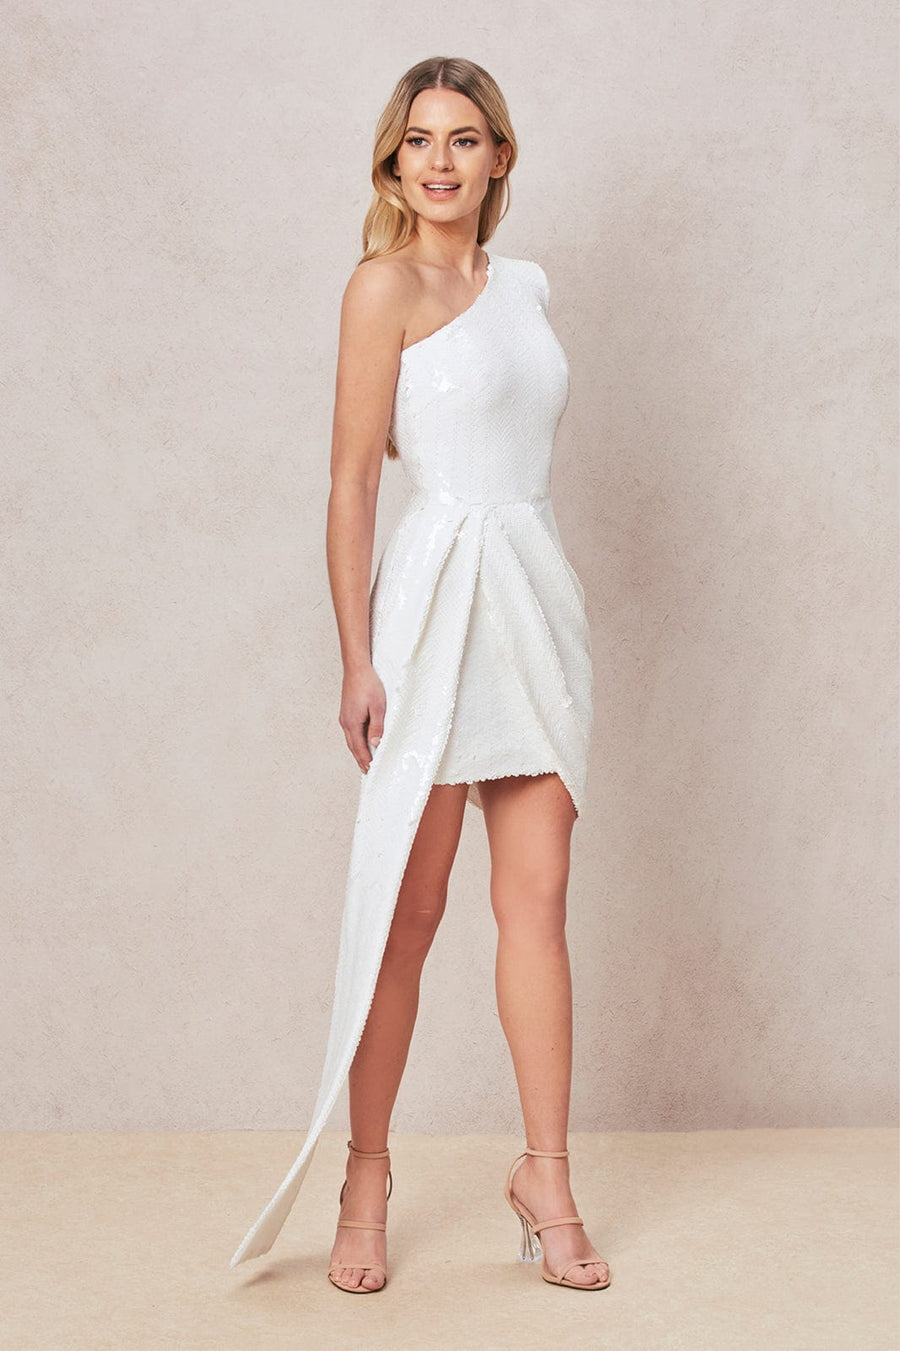 Celine White Dress